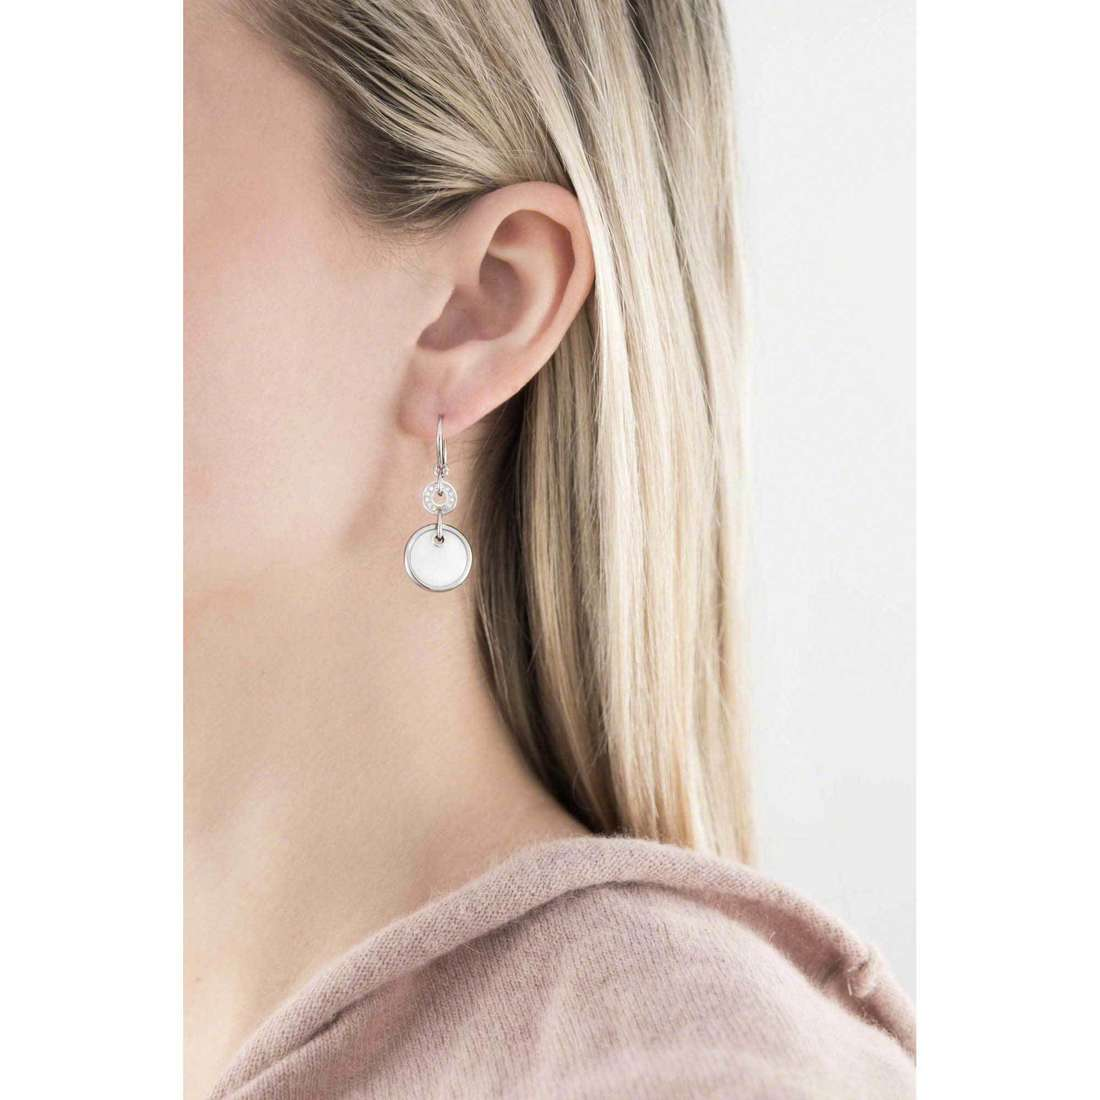 Fossil earrings woman JF00551040 indosso